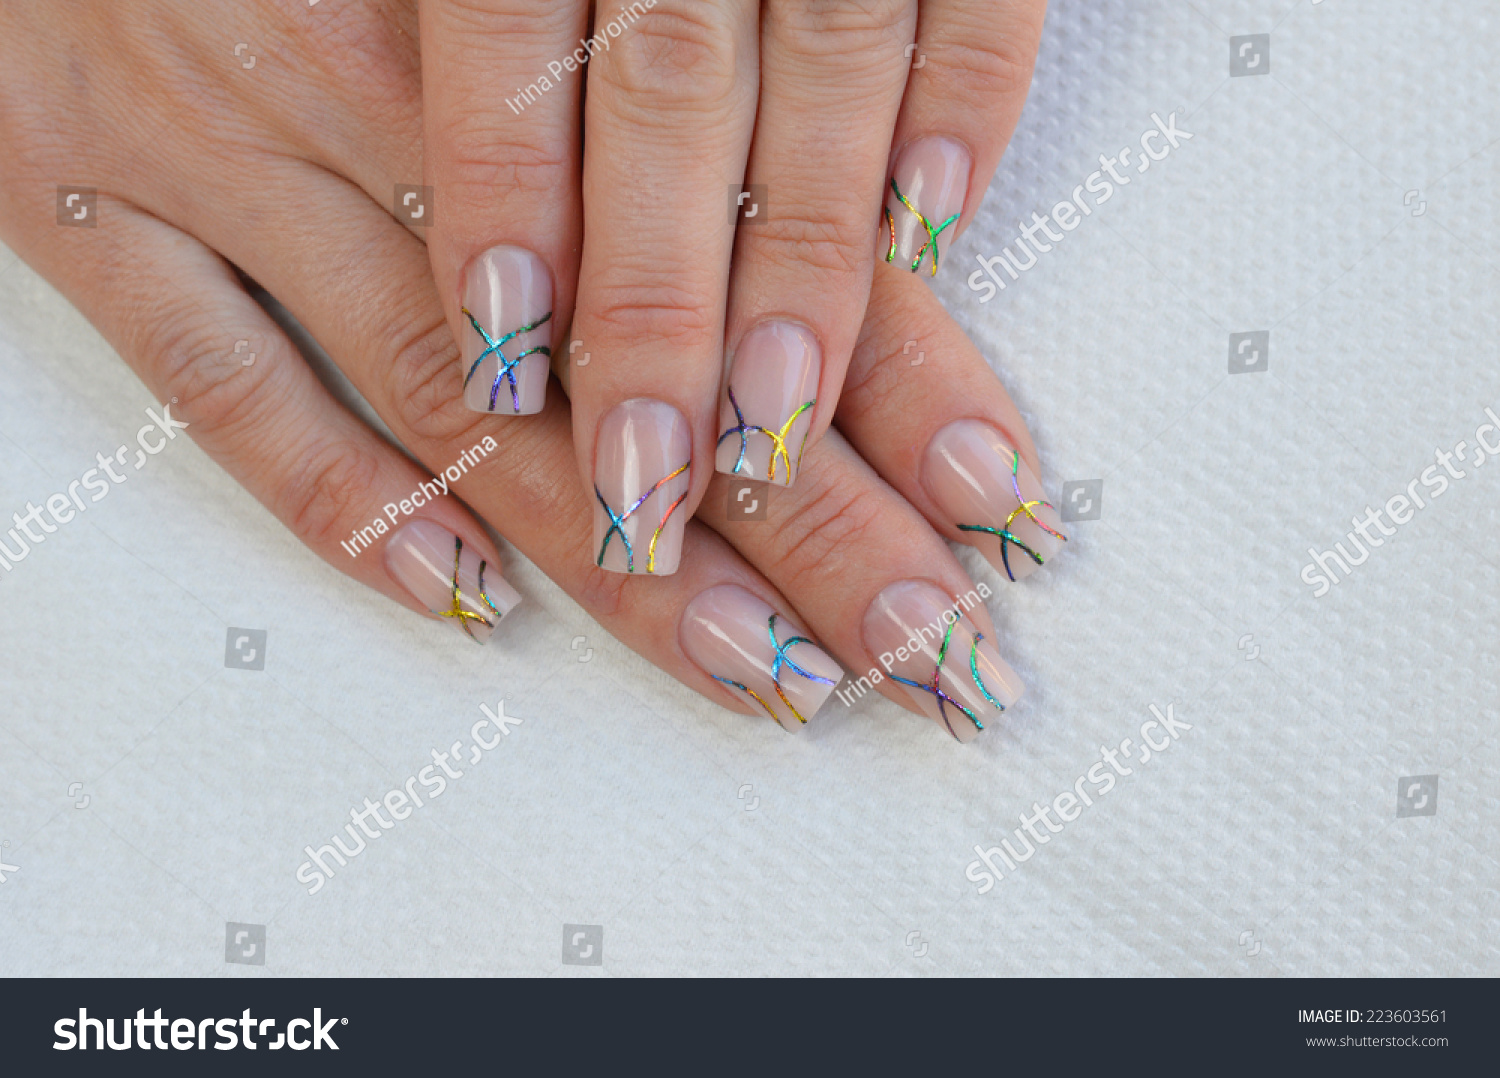 Beautiful nude nail art design rainbow stock photo 223603561 beautiful nude nail art design with rainbow transfer foil prinsesfo Gallery